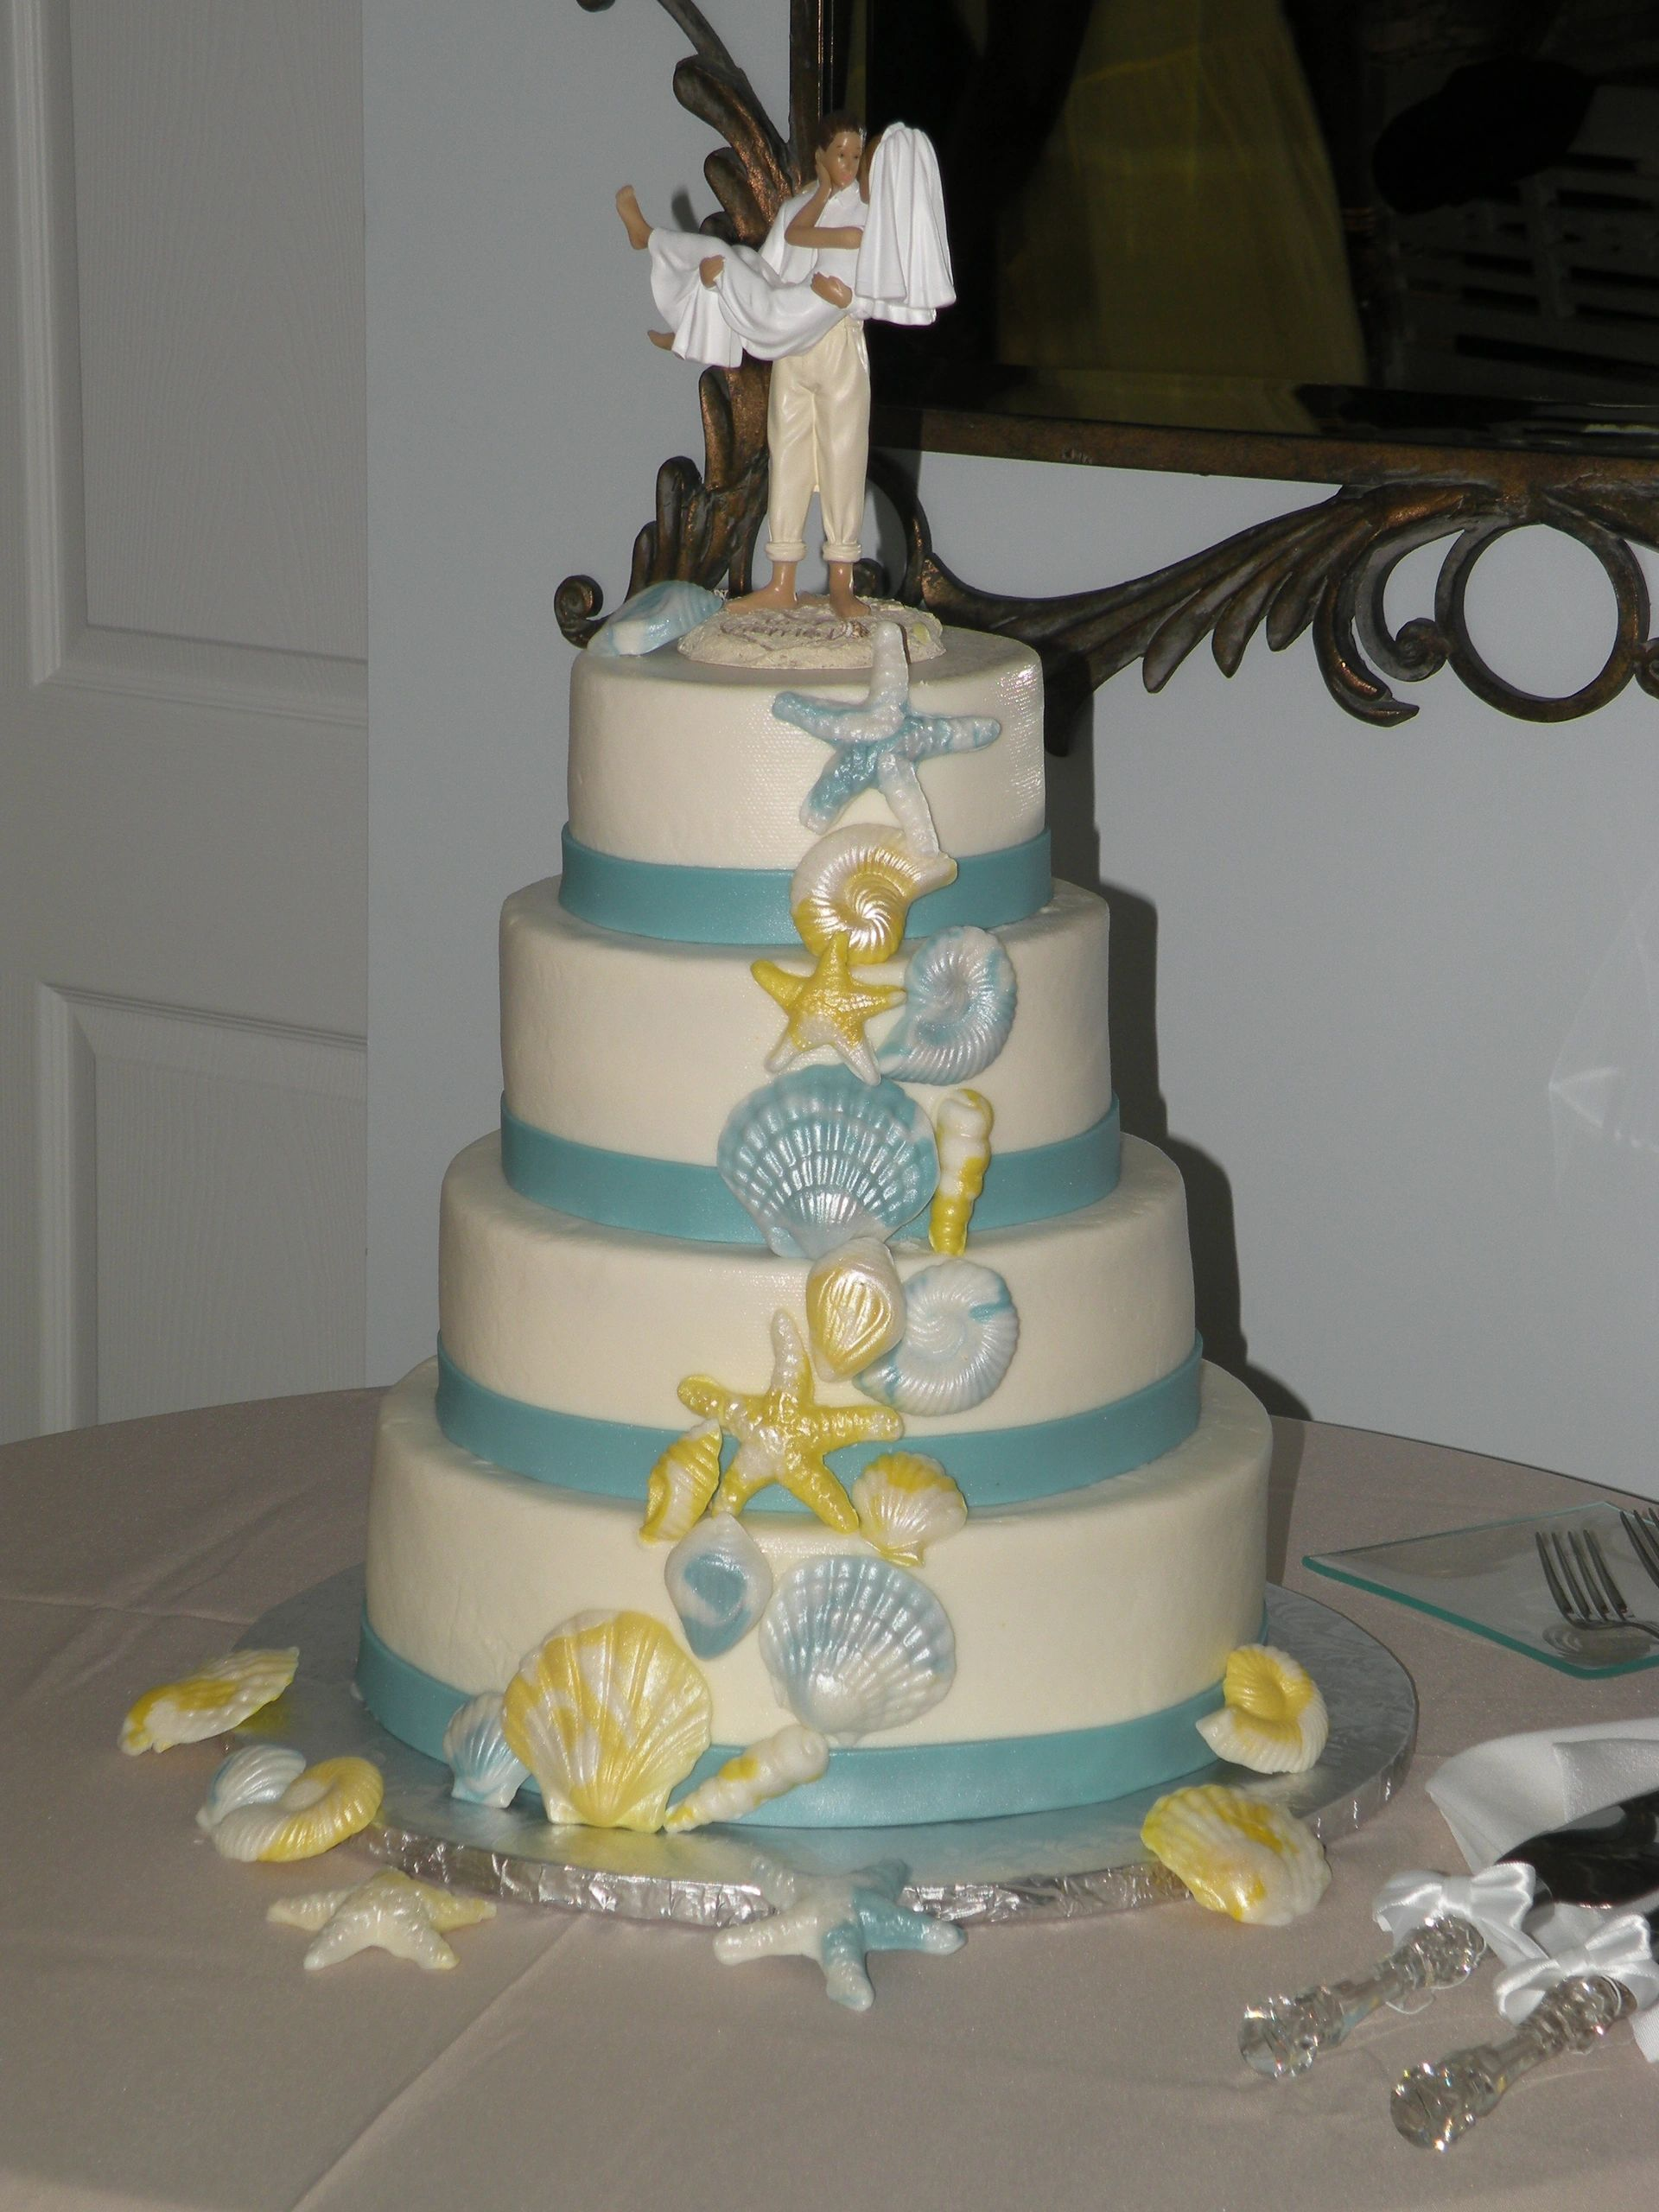 A Retail Bakery Specializing In Cupcakes Cakes Wedding Desserts